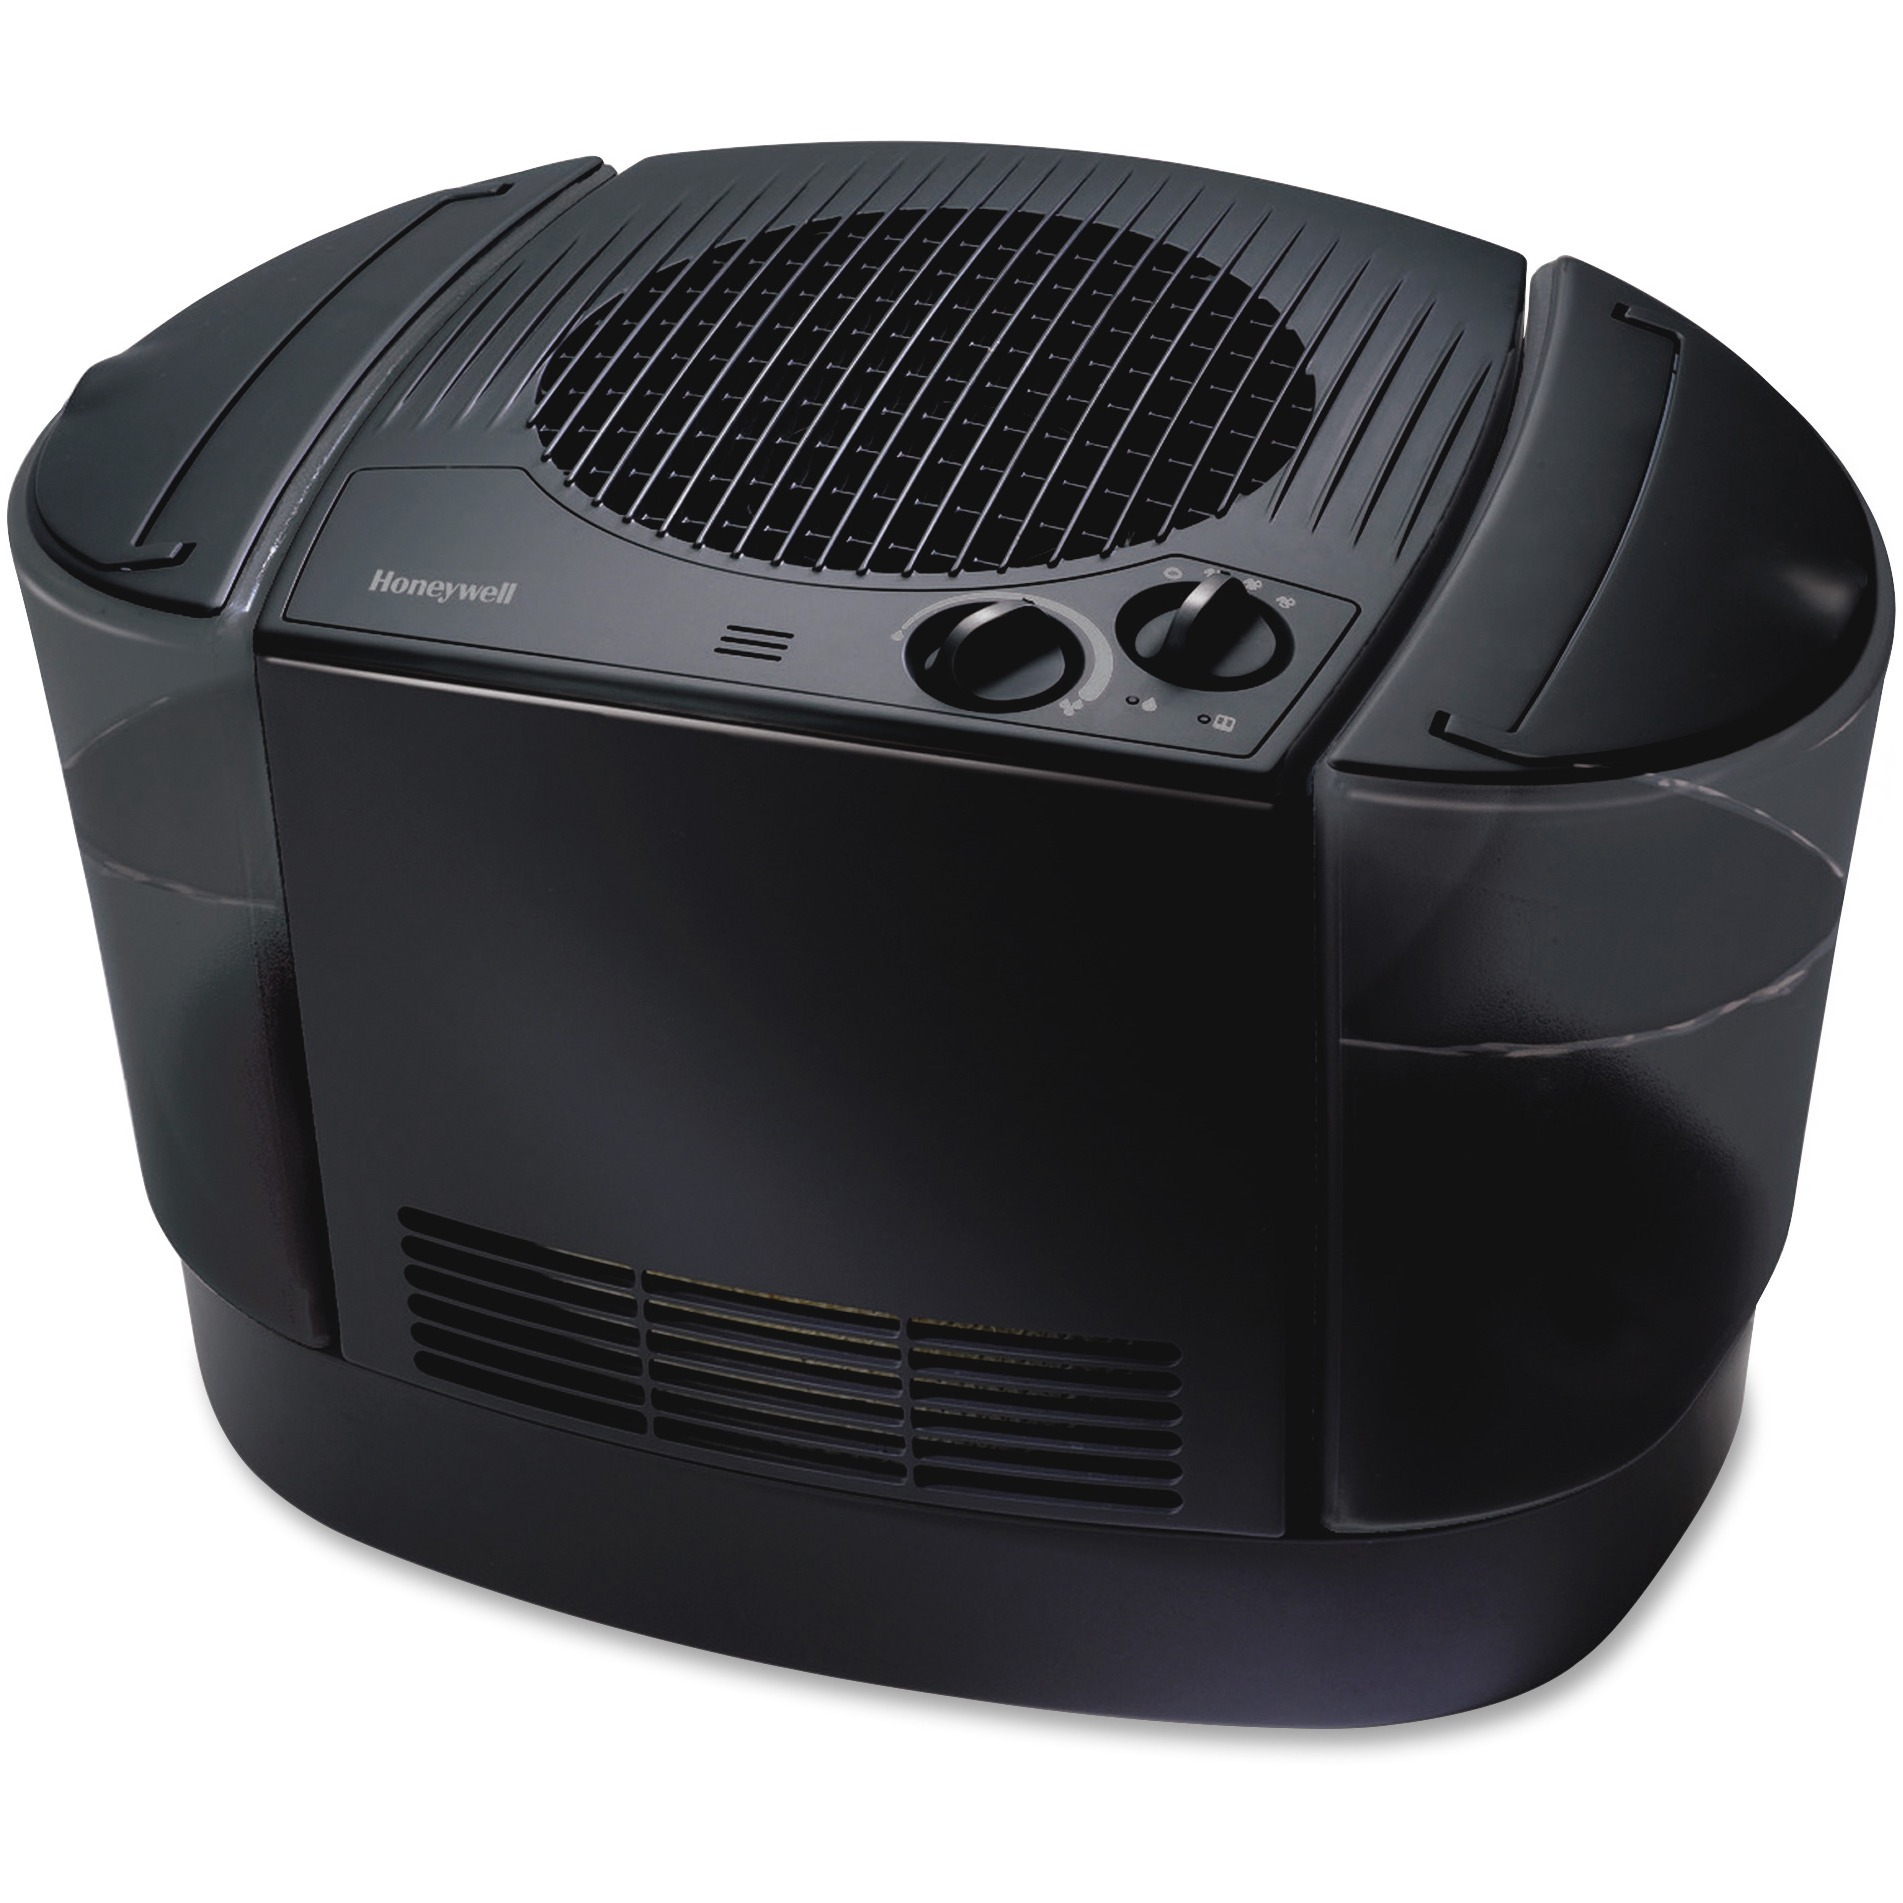 Honeywell Top-fill Console Humidifier